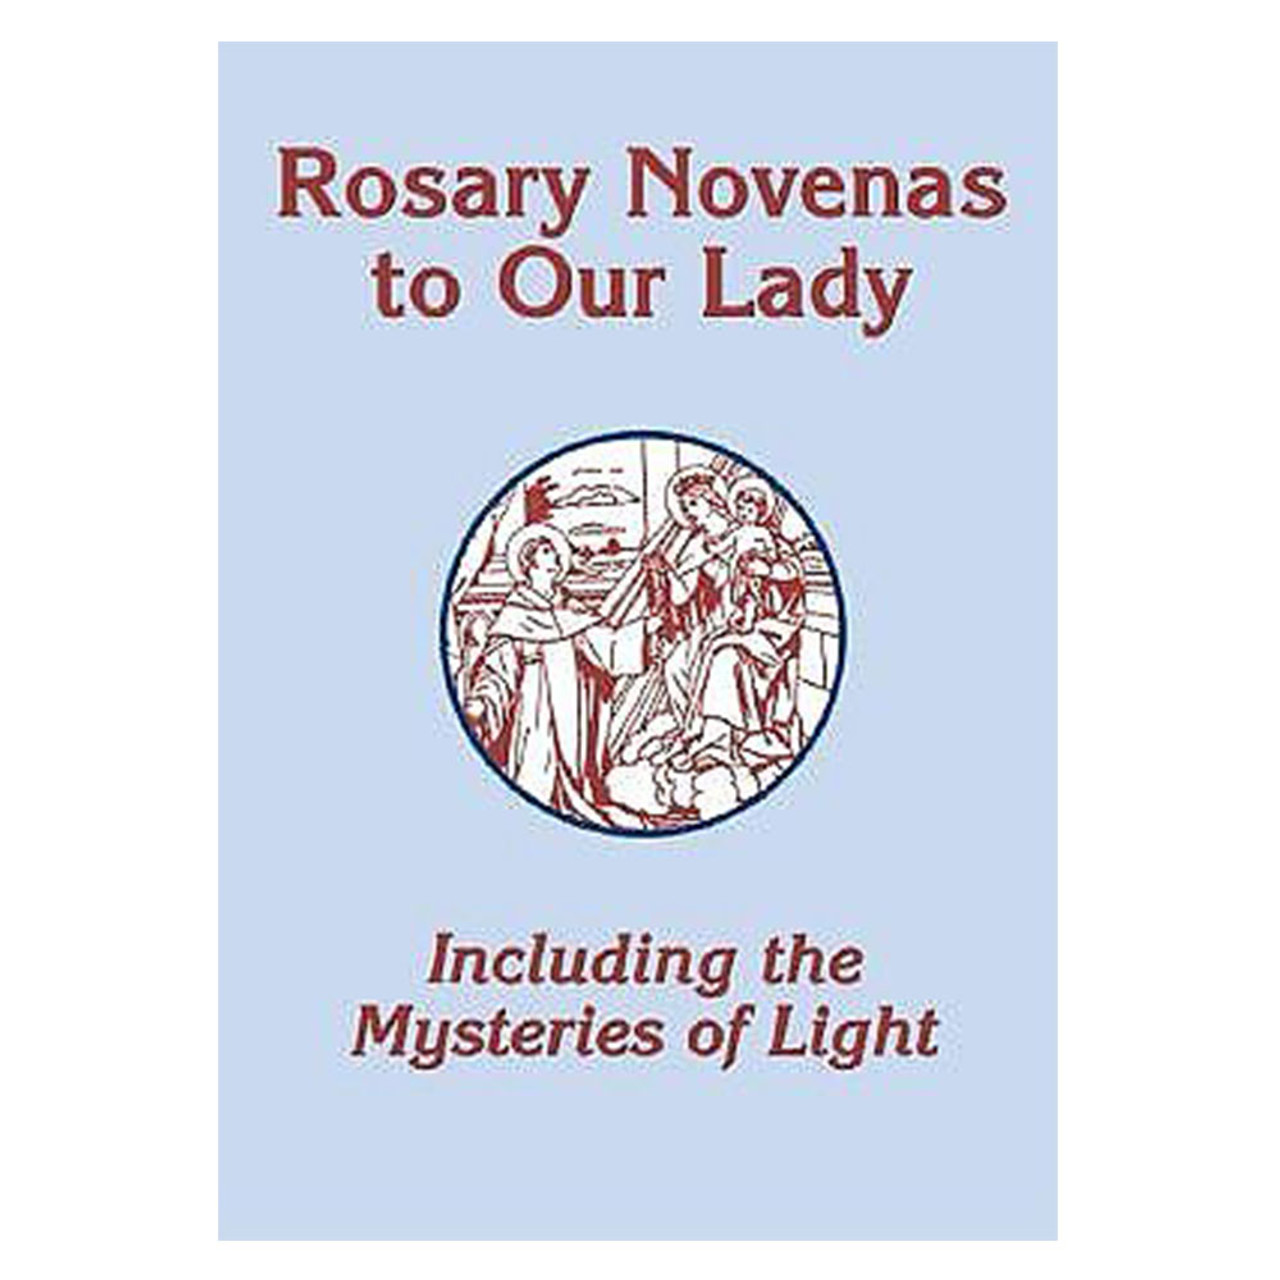 Rosary Novenas to Our Lady w/ Mysteries of Light